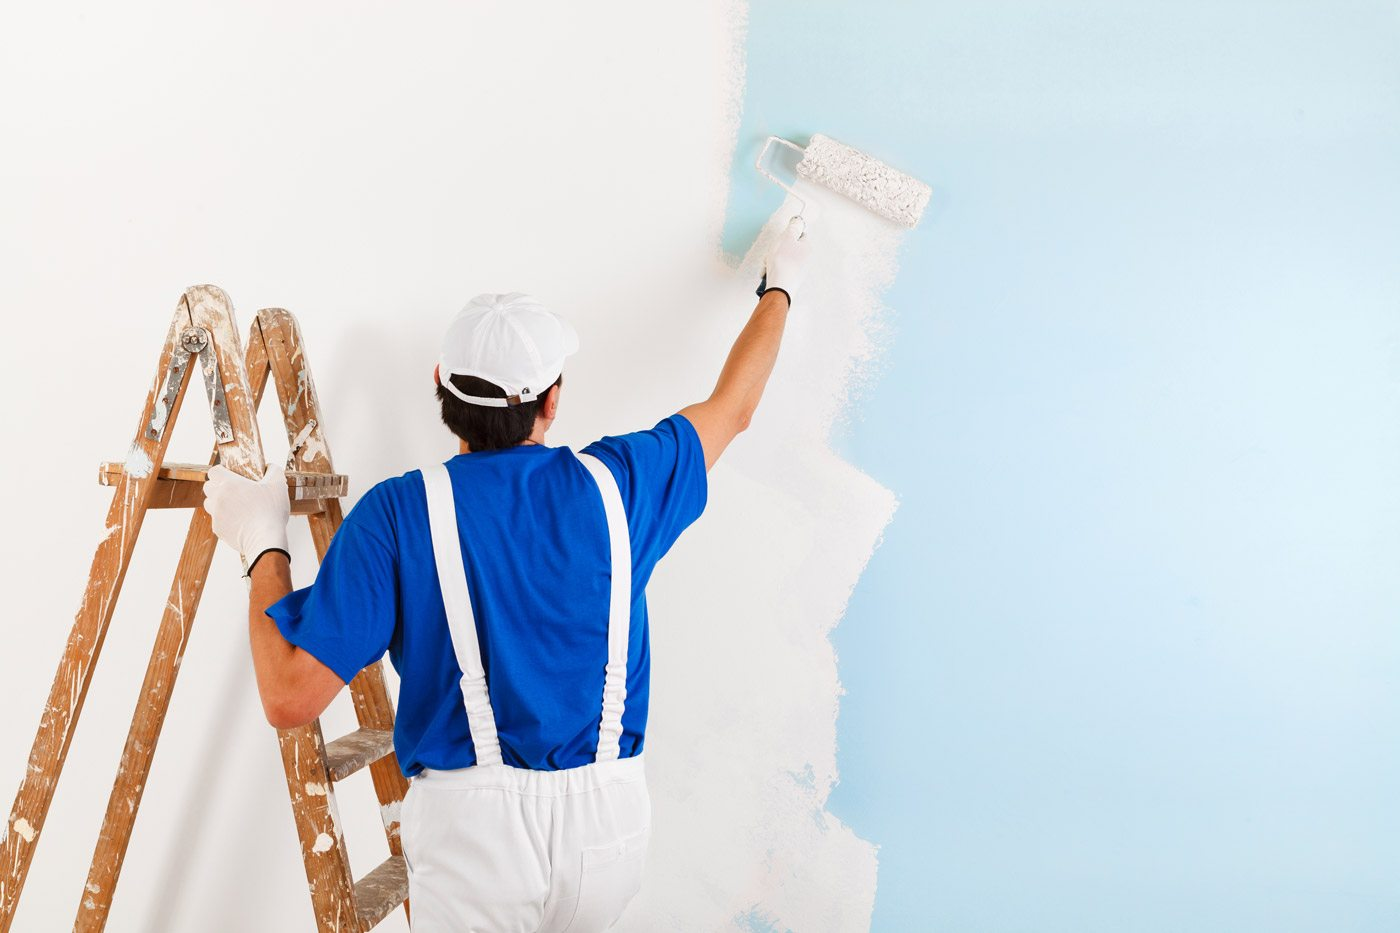 Contact Us-San Marcos TX Professional Painting Contractors-We offer Residential & Commercial Painting, Interior Painting, Exterior Painting, Primer Painting, Industrial Painting, Professional Painters, Institutional Painters, and more.